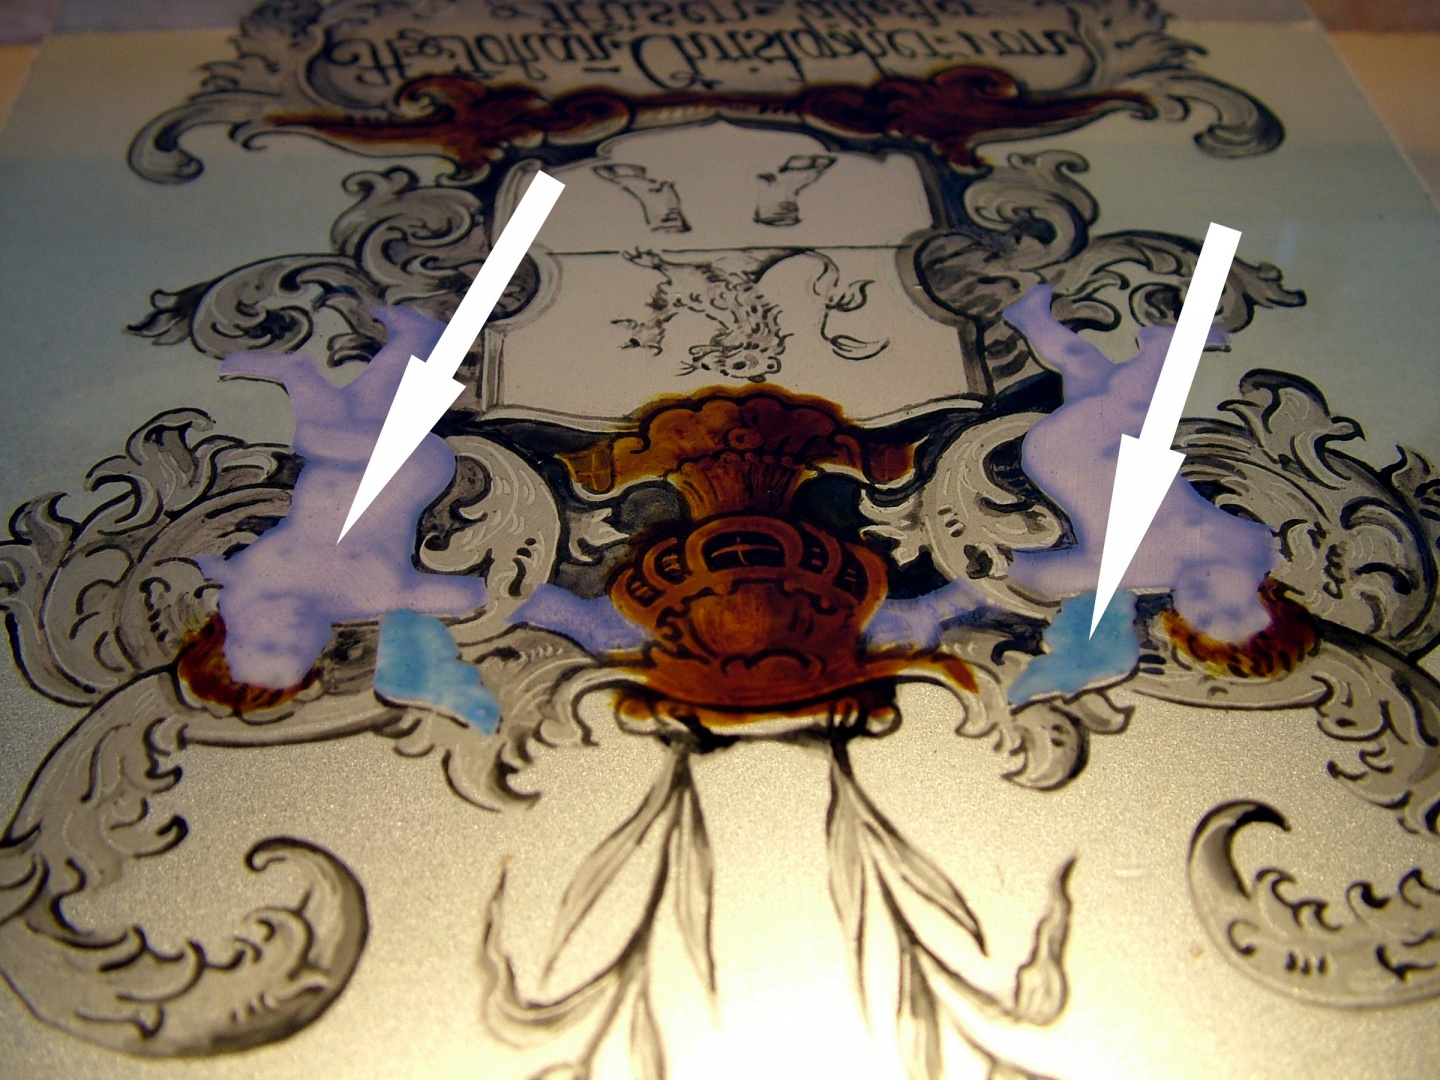 ill 22. Making a copy. Brush-painted angels' body tone and copper-green wings on the reverse side of the glass.